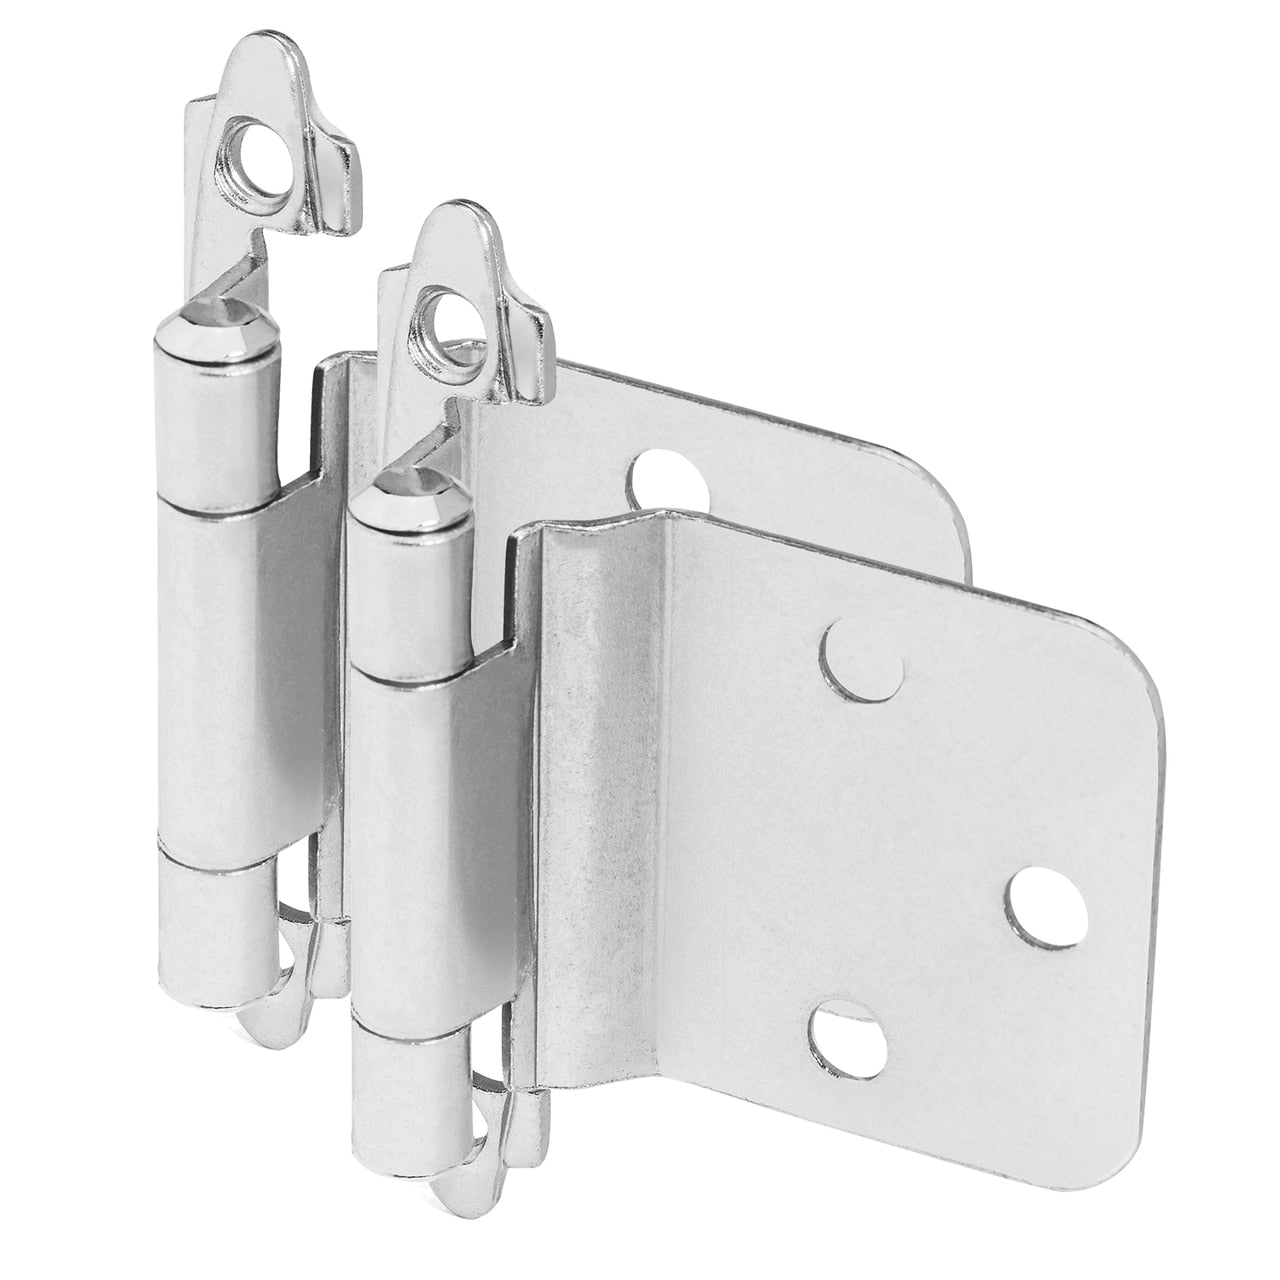 Cosmas 16890-SN Satin Nickel Hinge Variable Overlay with 30 Degree Reverse Bevel (Pair)